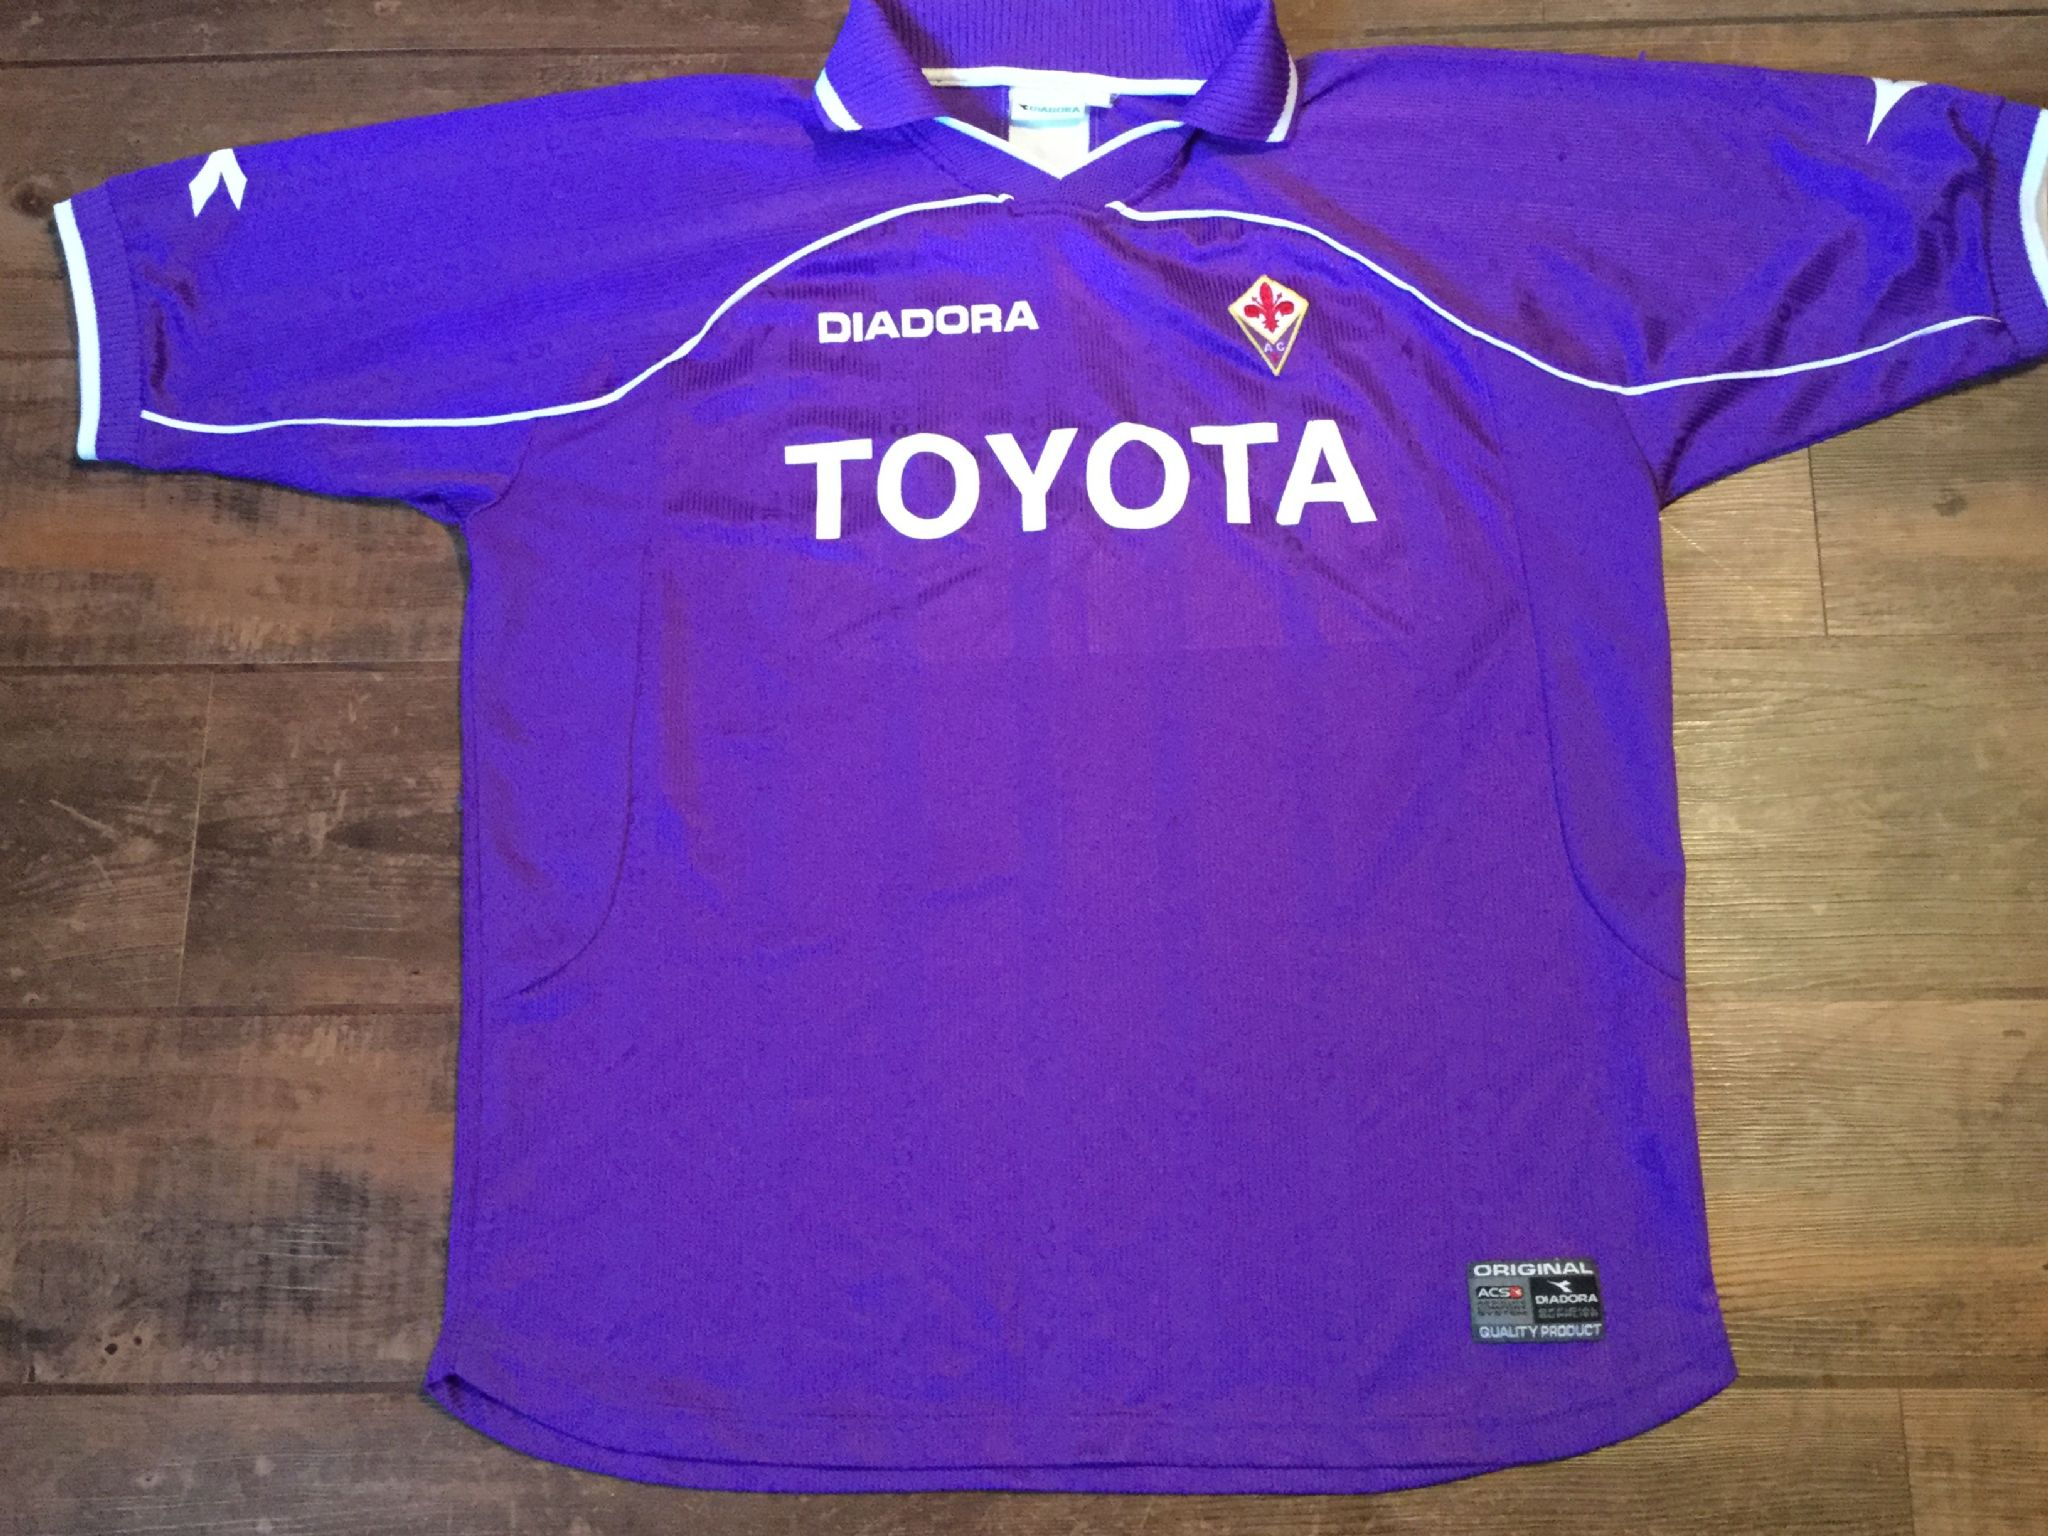 272d8025a 2000 2001 Fiorentina Home Football Shirt Adults XL